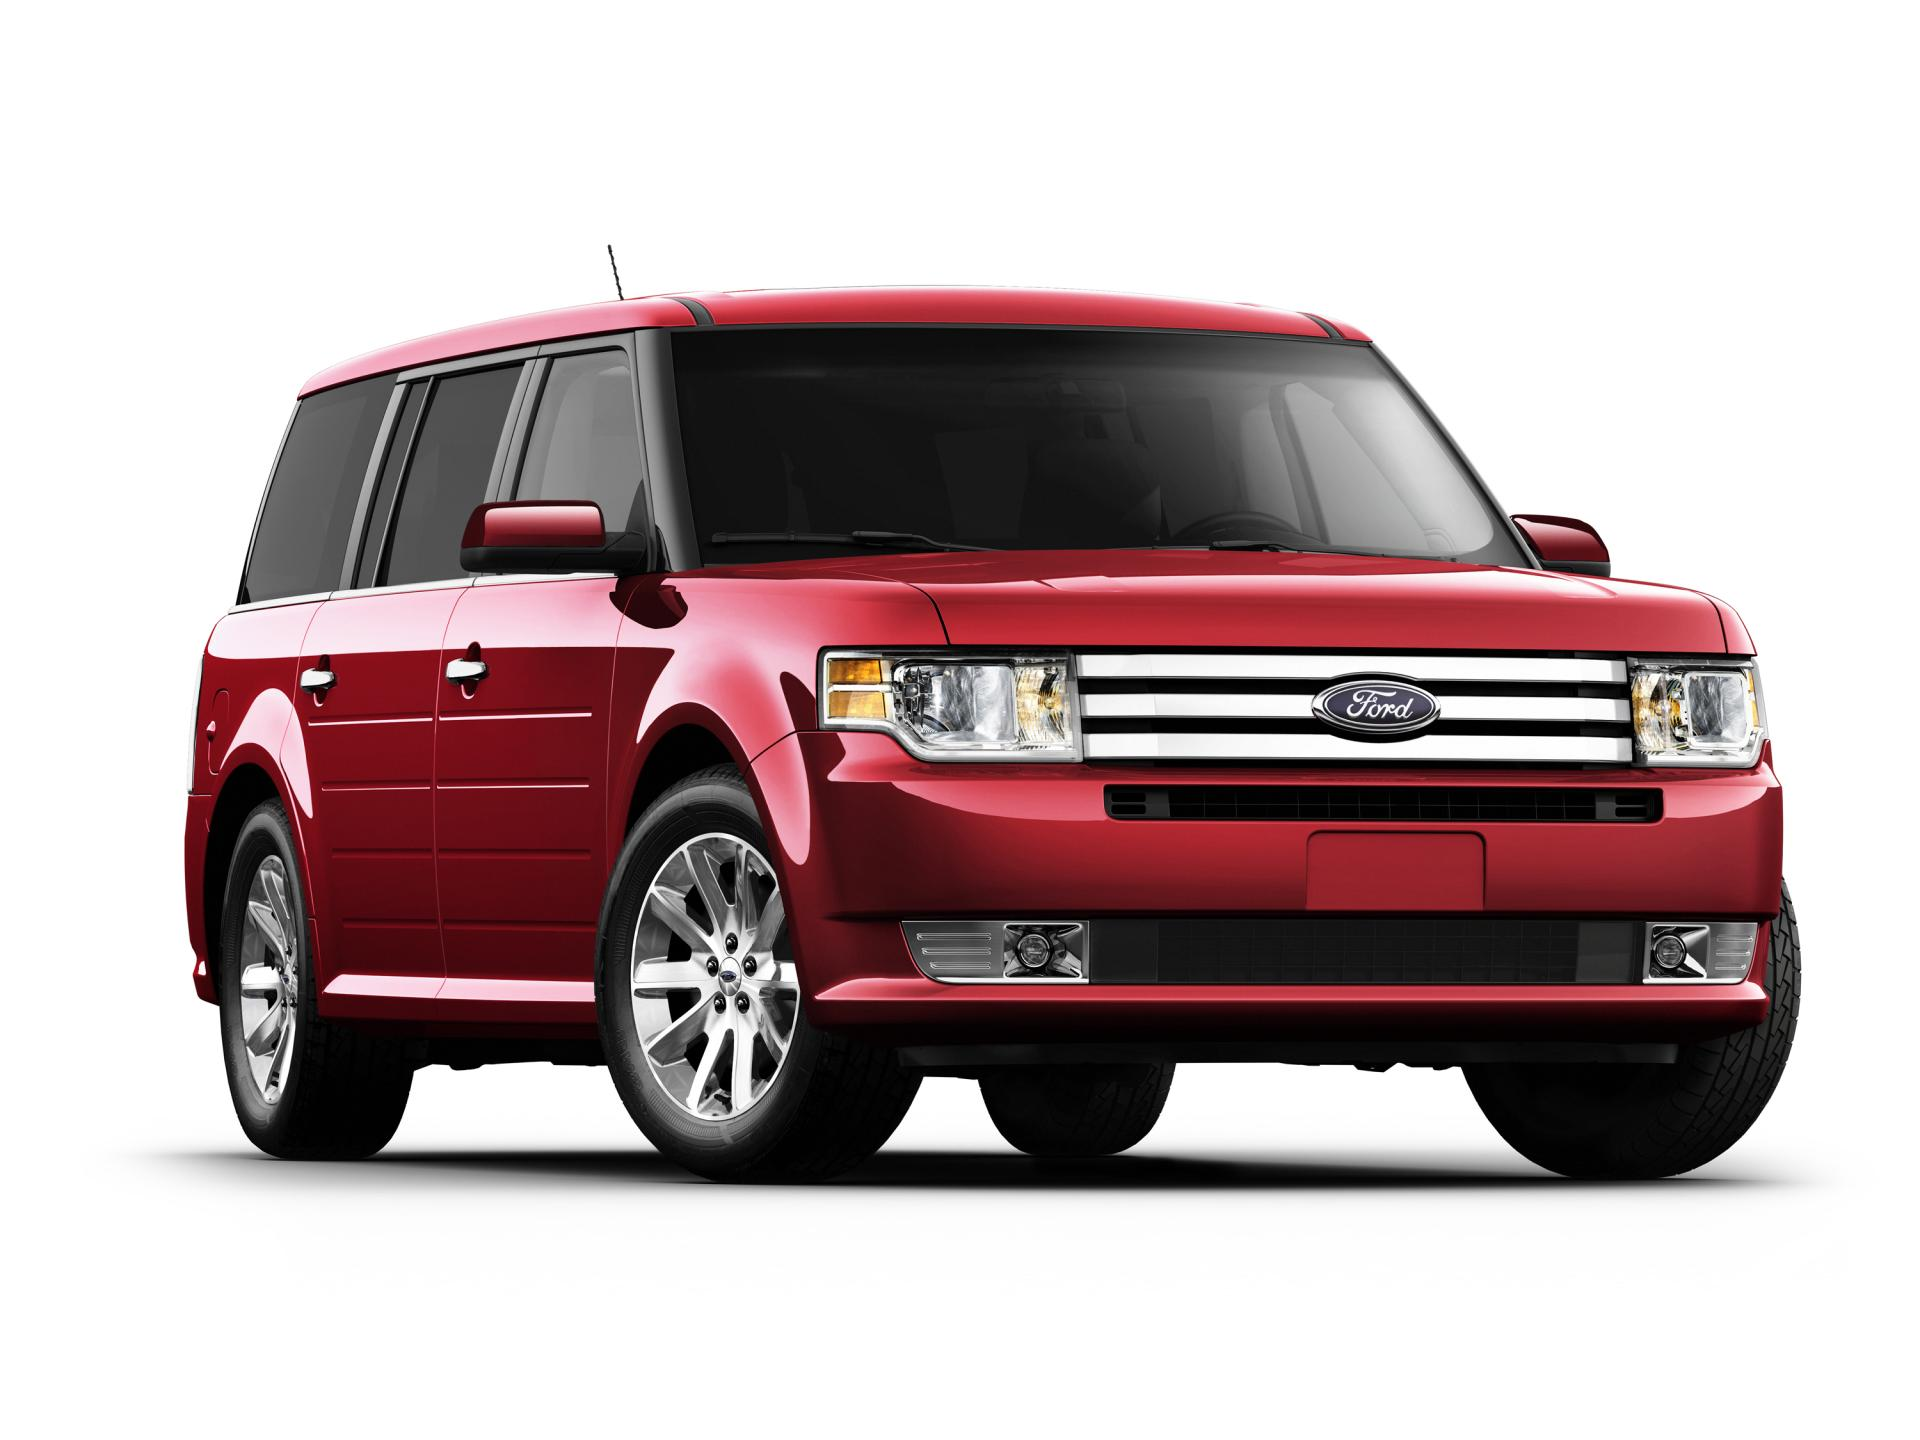 2012 ford flex news and information conceptcarz com